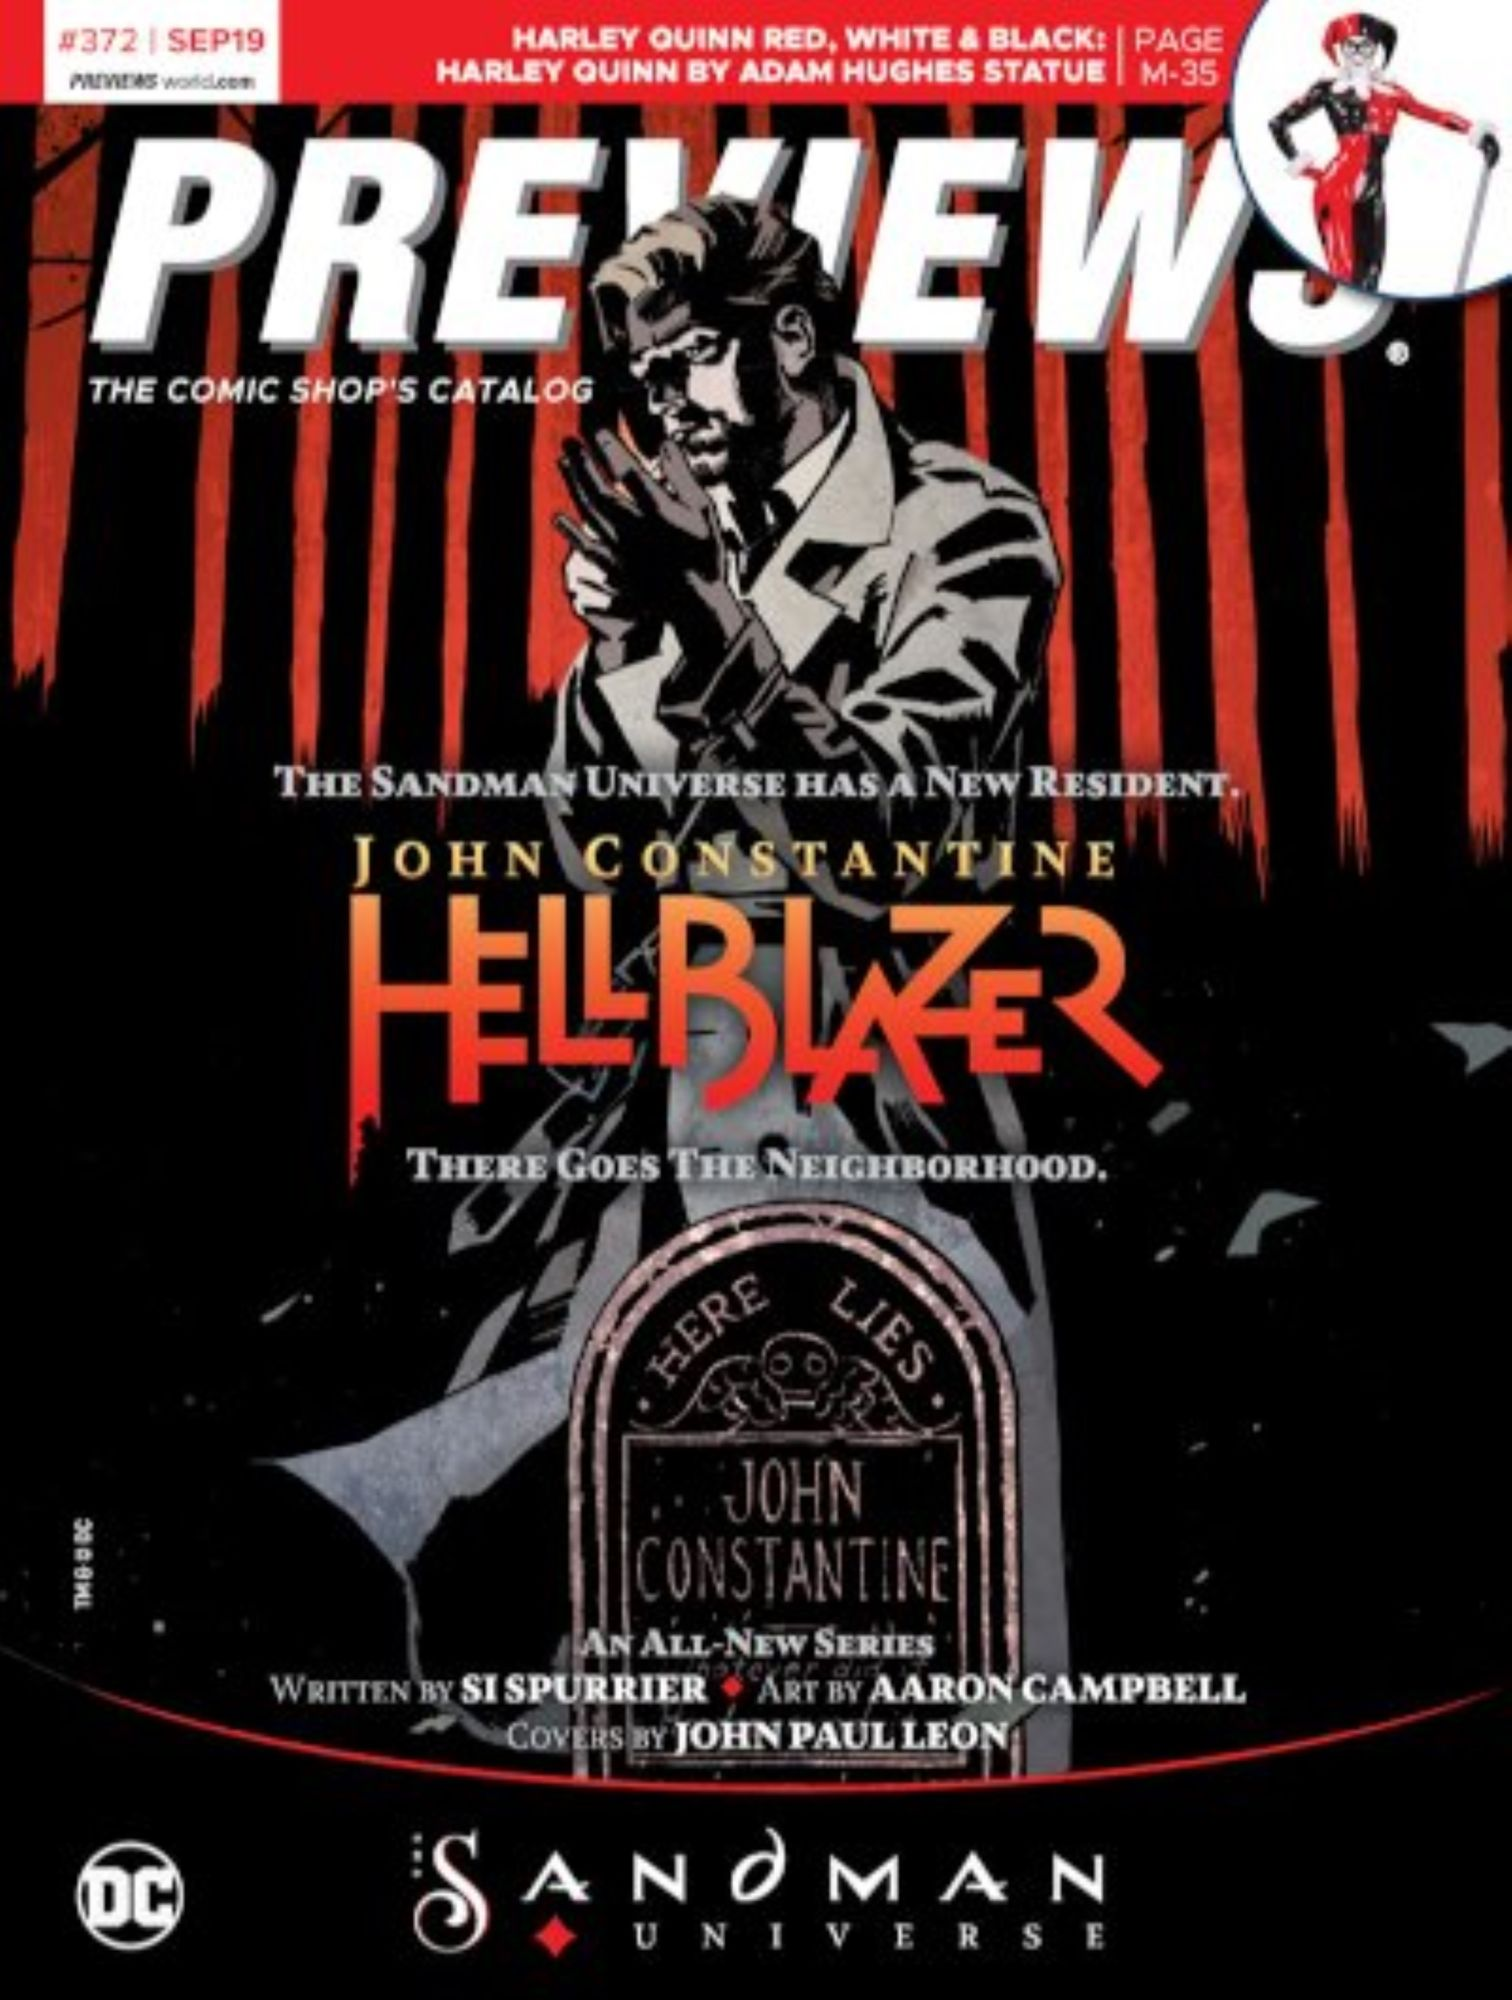 John Constantine and Undiscovered Country On Covers Of Next Week's Previews